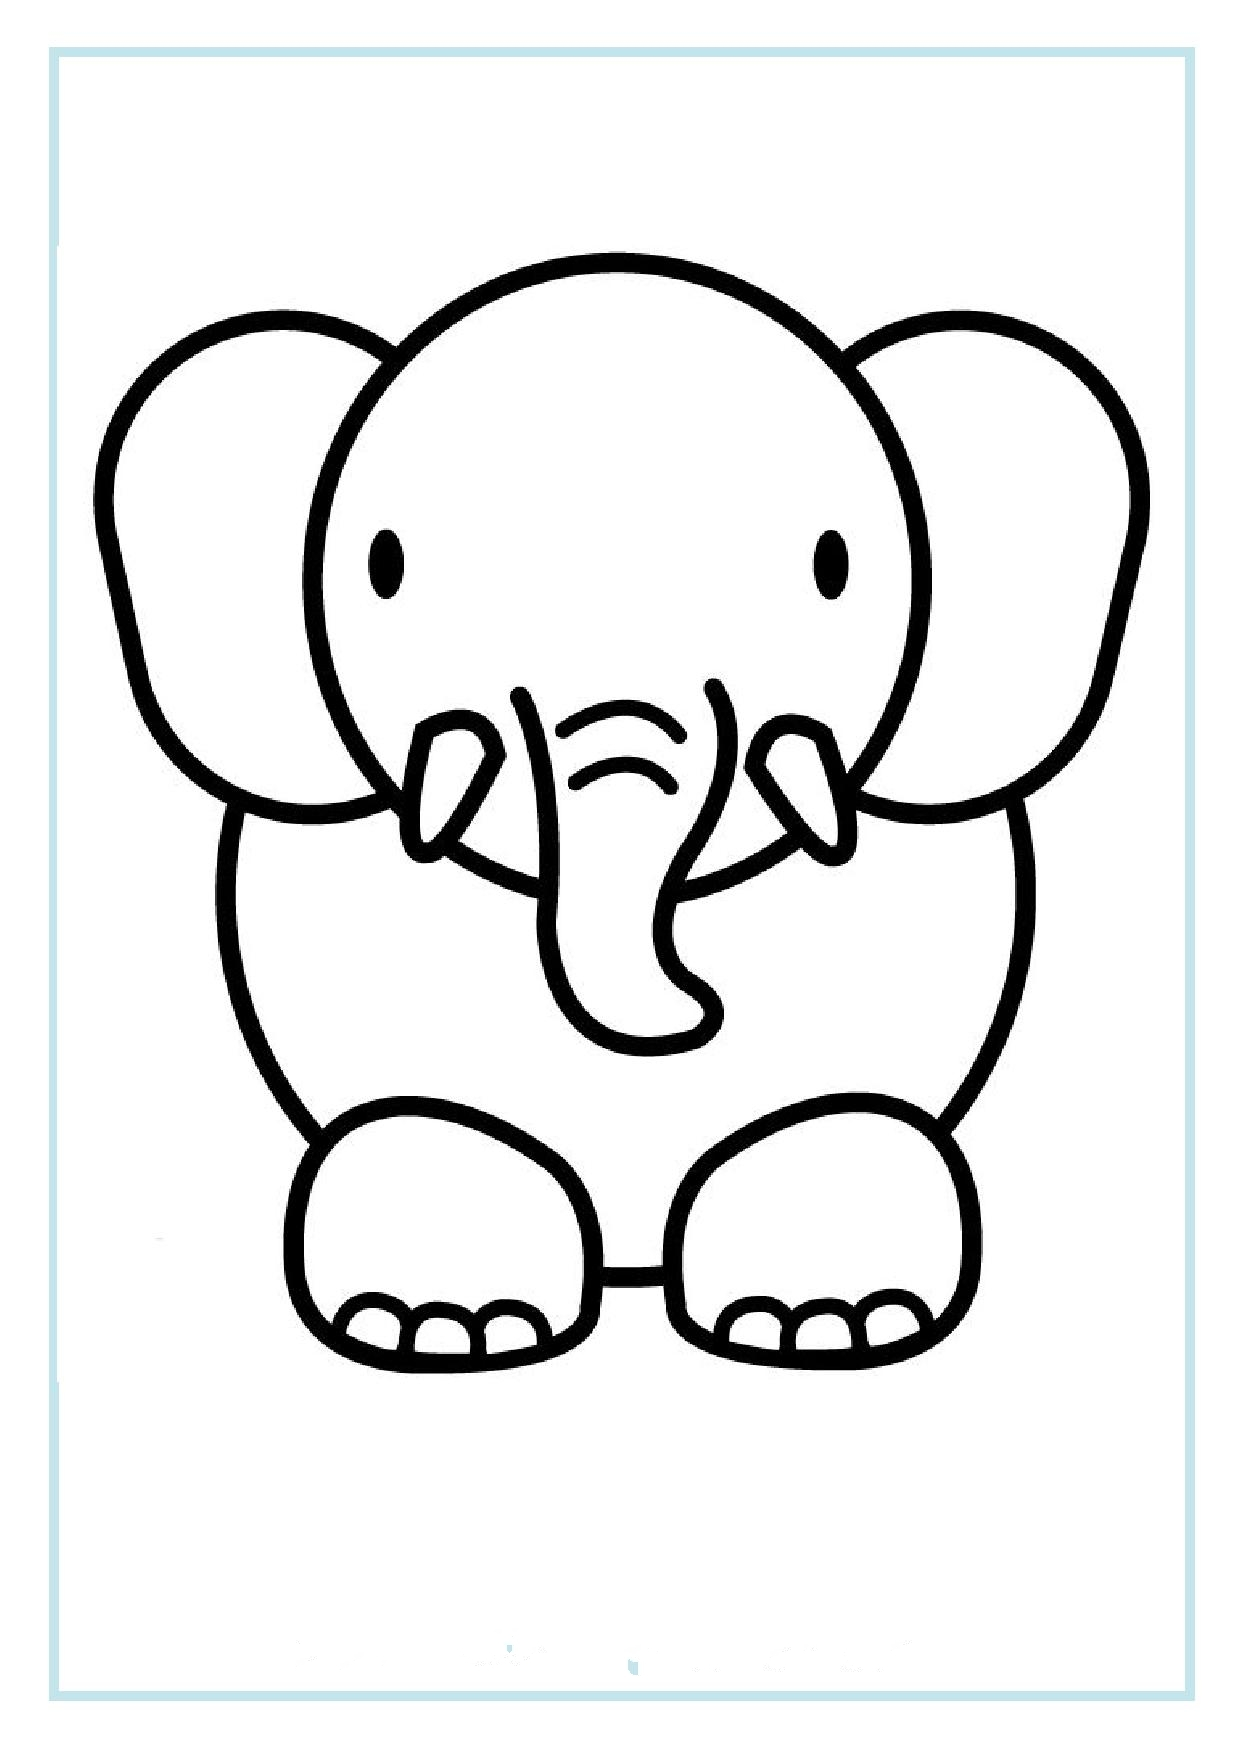 Printable elephant coloring pages for preschoolFree Printable